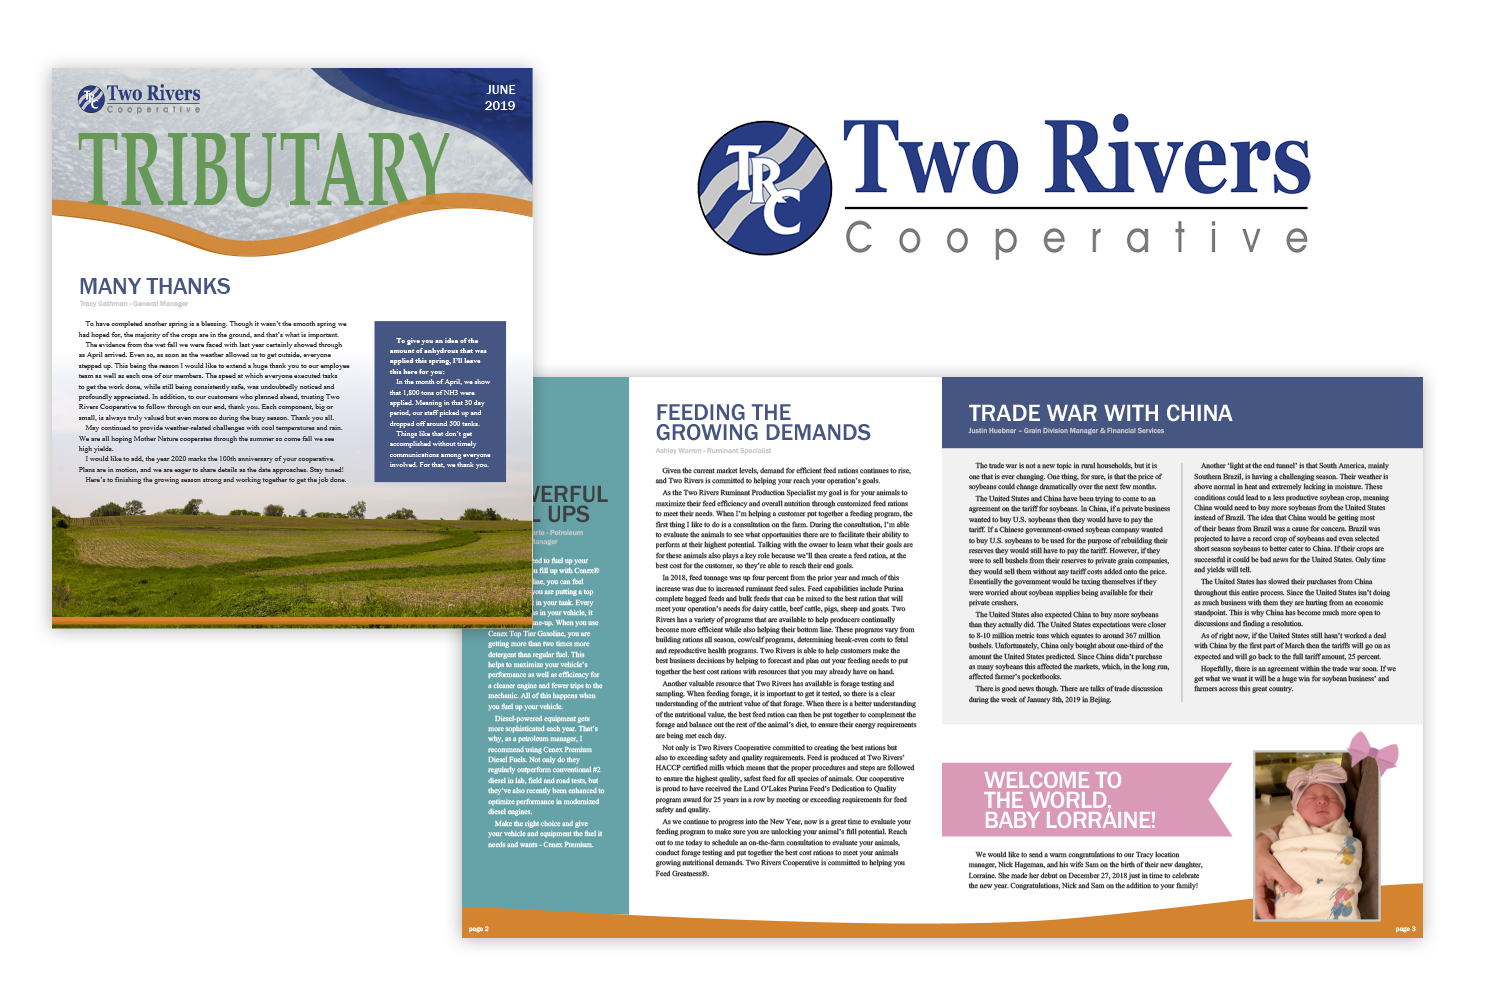 Two Rivers Cooperative Tributary Newsletter